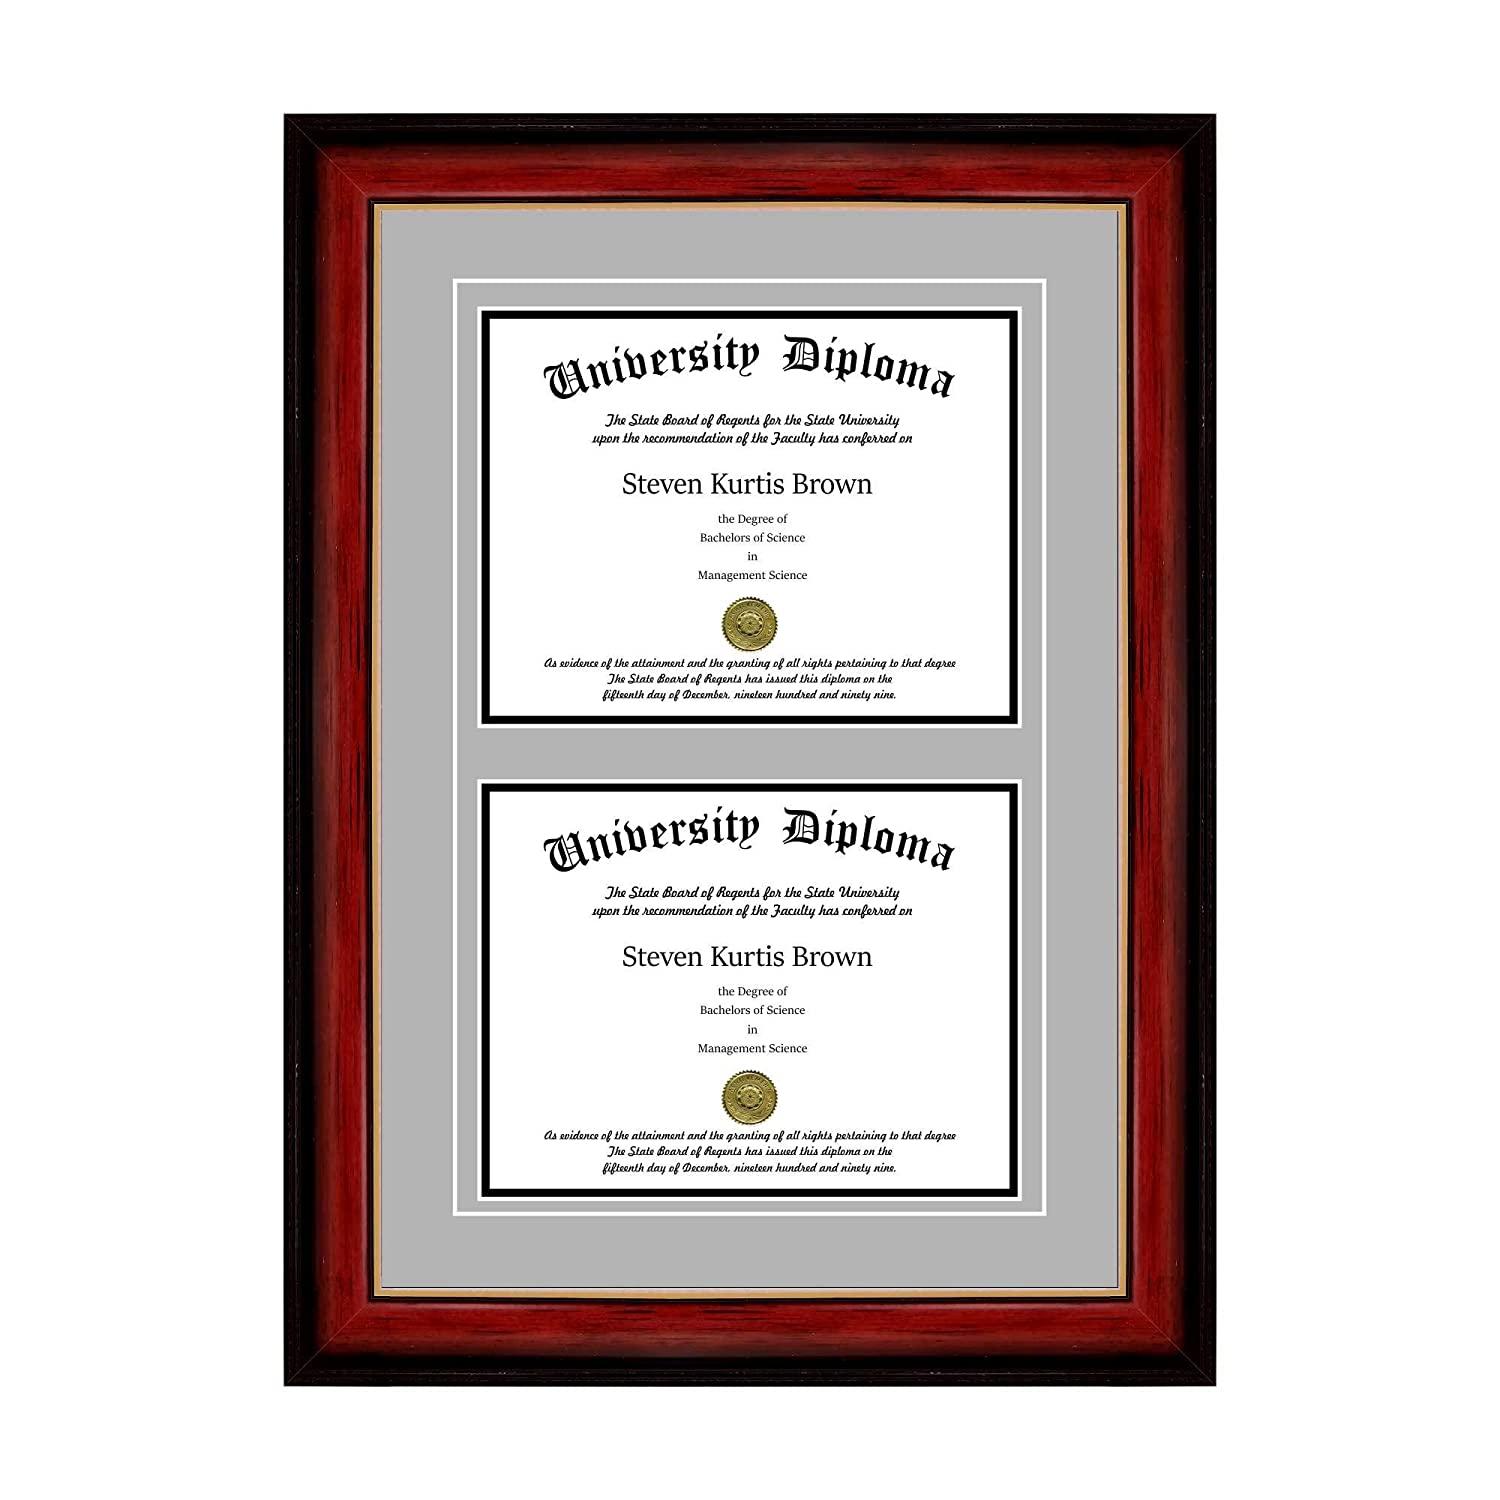 com double diploma frame double matting for x  com double diploma frame double matting for 8 5 x 11 tall diploma mahogany gold lip 2 frame